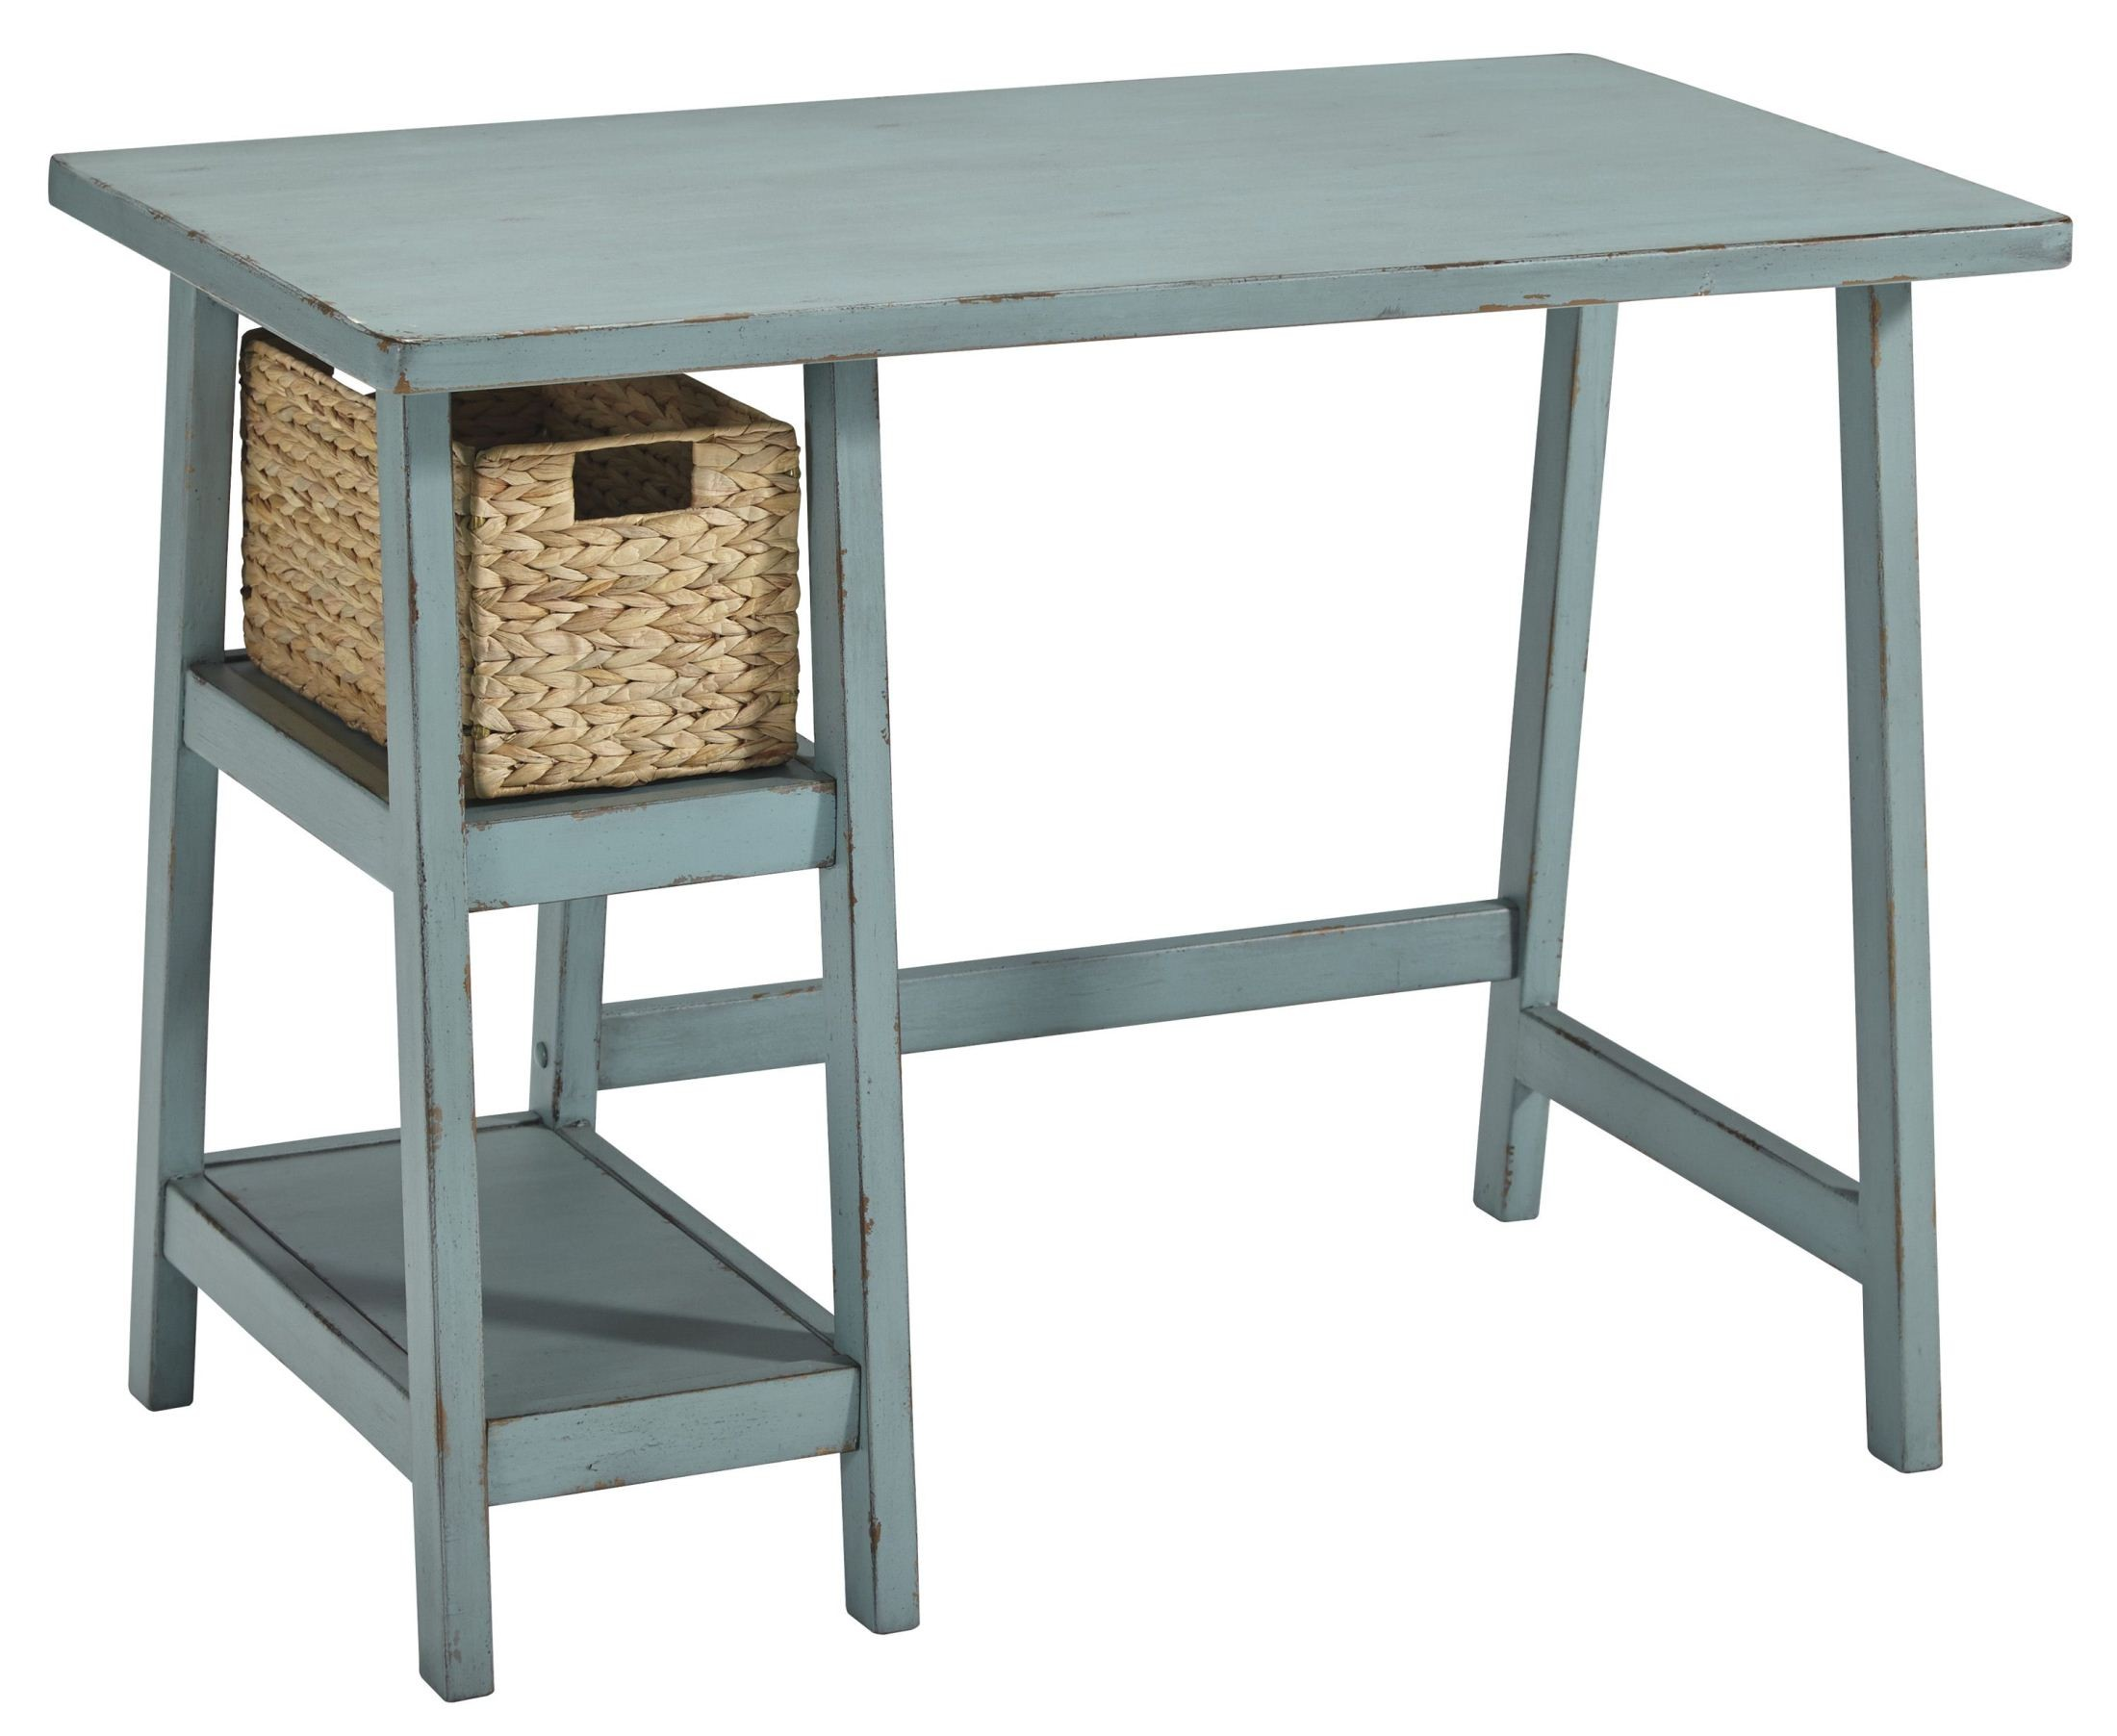 josh thomas design s house teal vintage img eka shop werke desk furniture